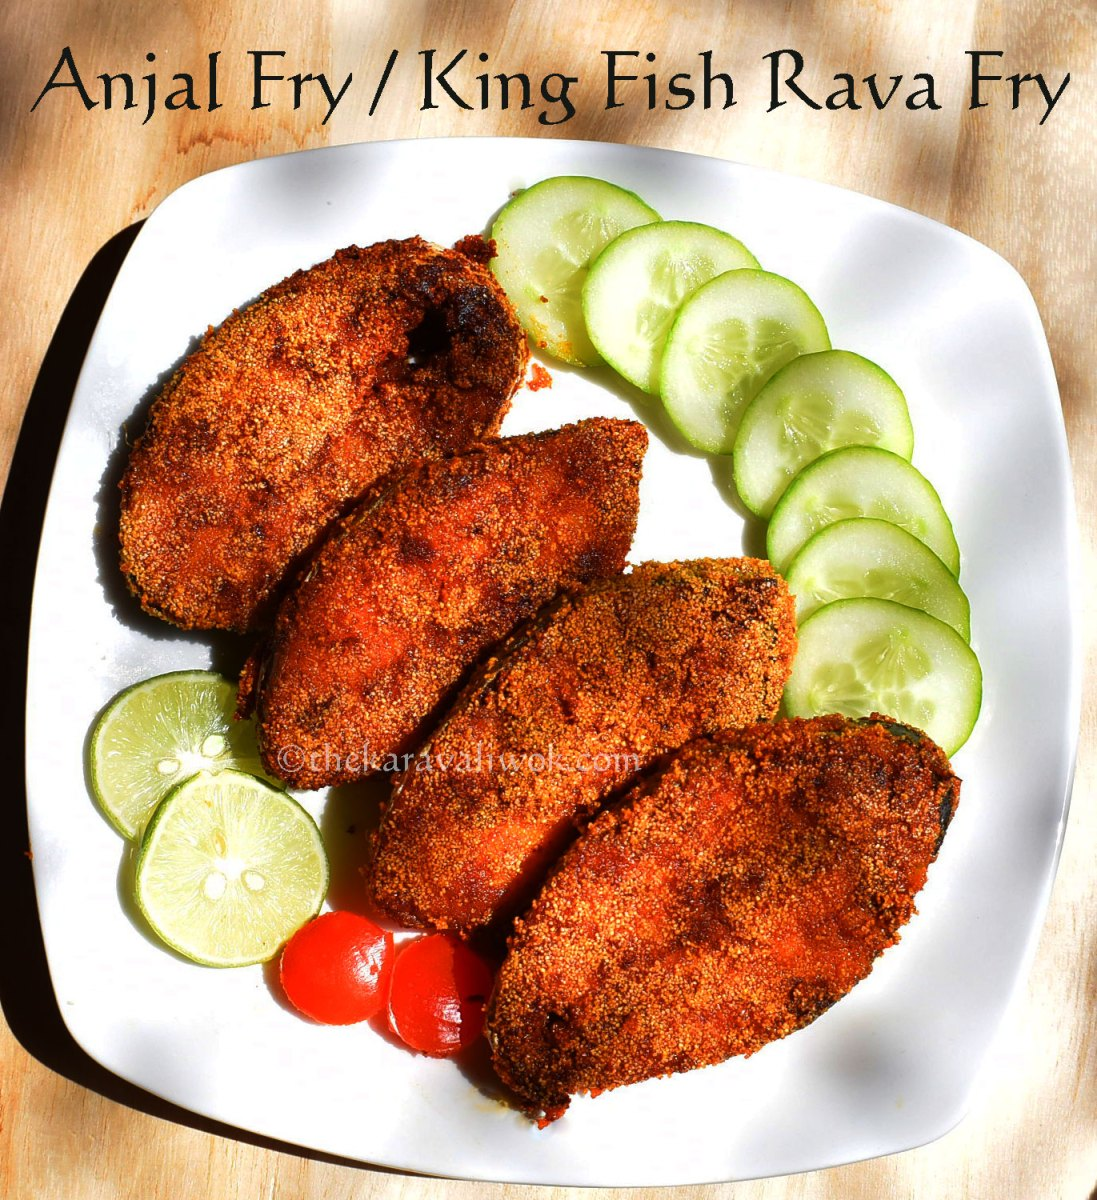 Anjal Fry | King Fish Rava Fry - Mangalorean Style